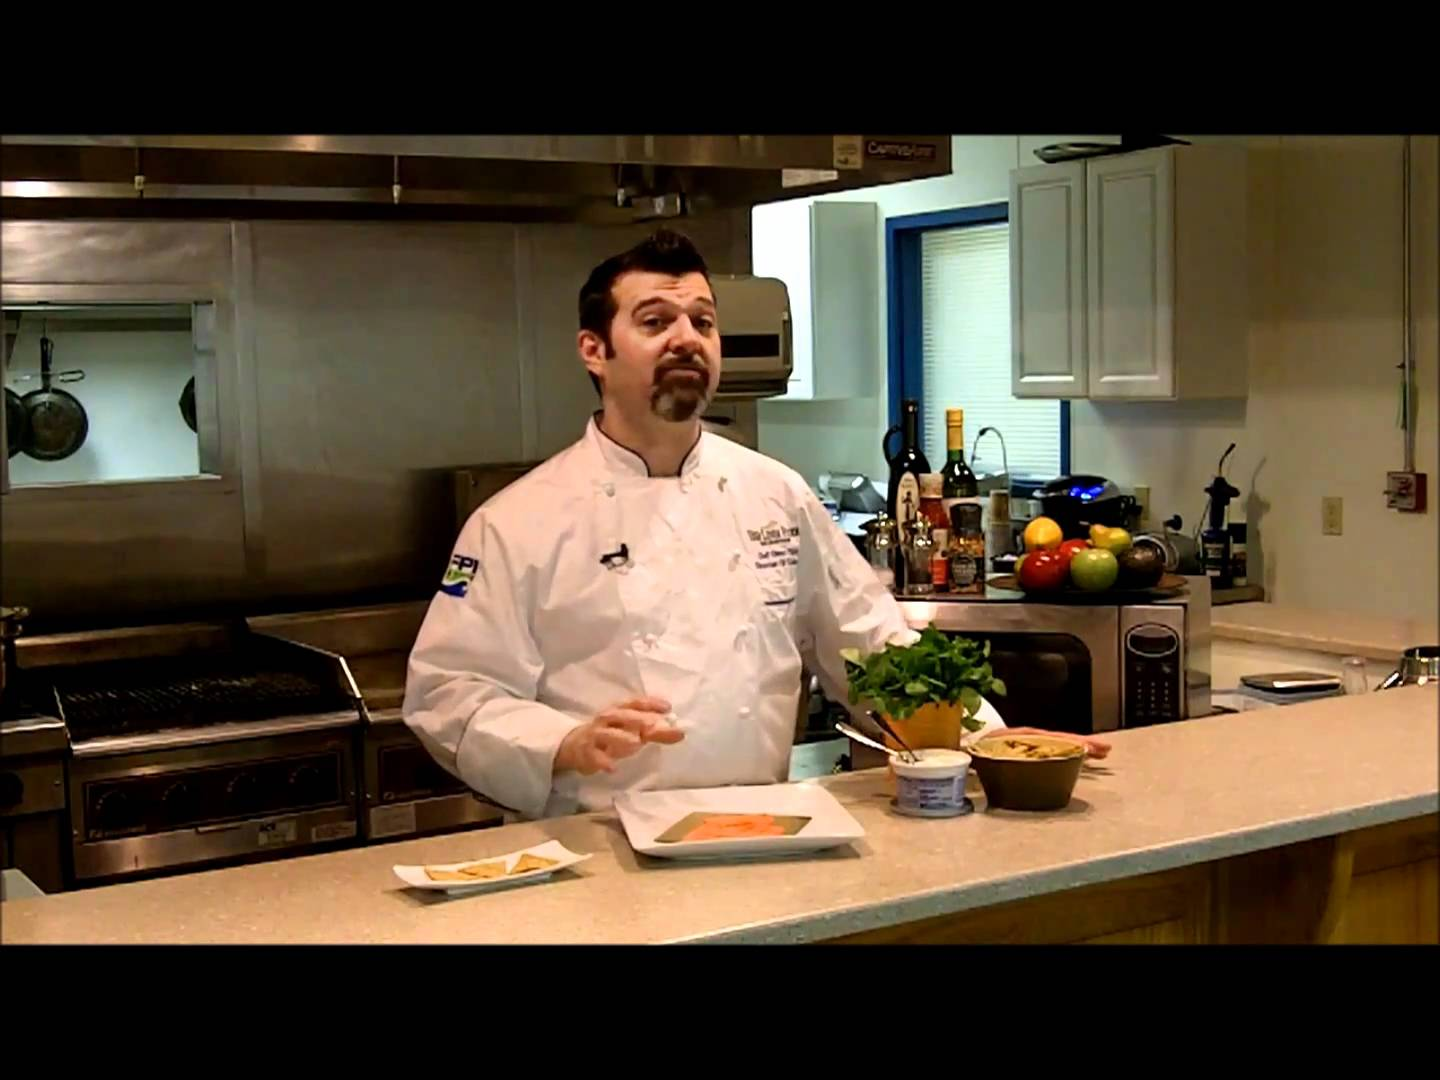 Ask the Chef: What's an easy seafood appetizer I can make in a pinch?